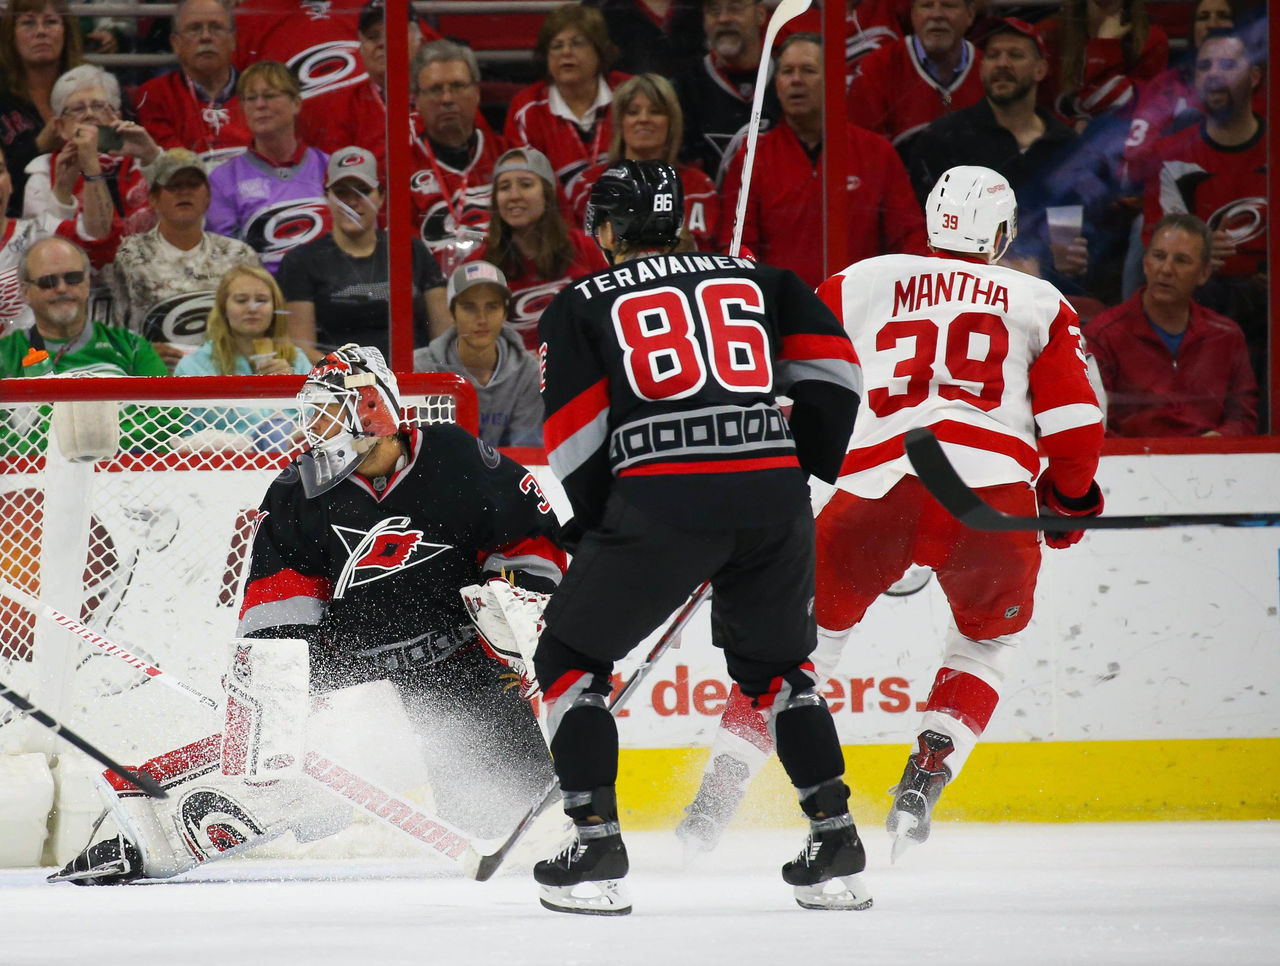 Cropped 2017 03 28t005231z 2109278447 nocid rtrmadp 3 nhl detroit red wings at carolina hurricanes